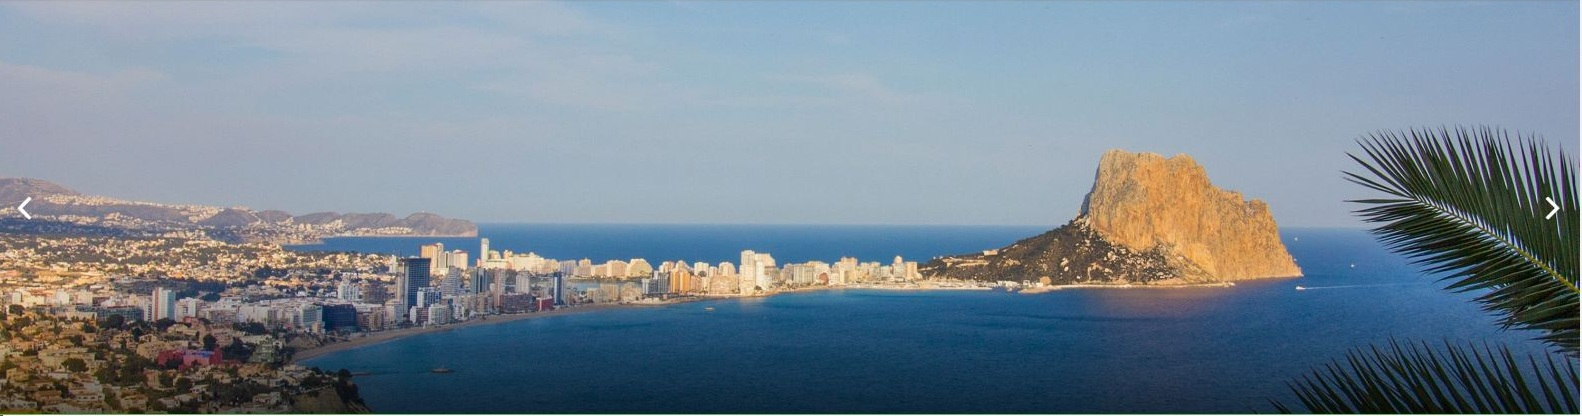 How to Sell Property in the Costa Blanca in a Shorter Time?